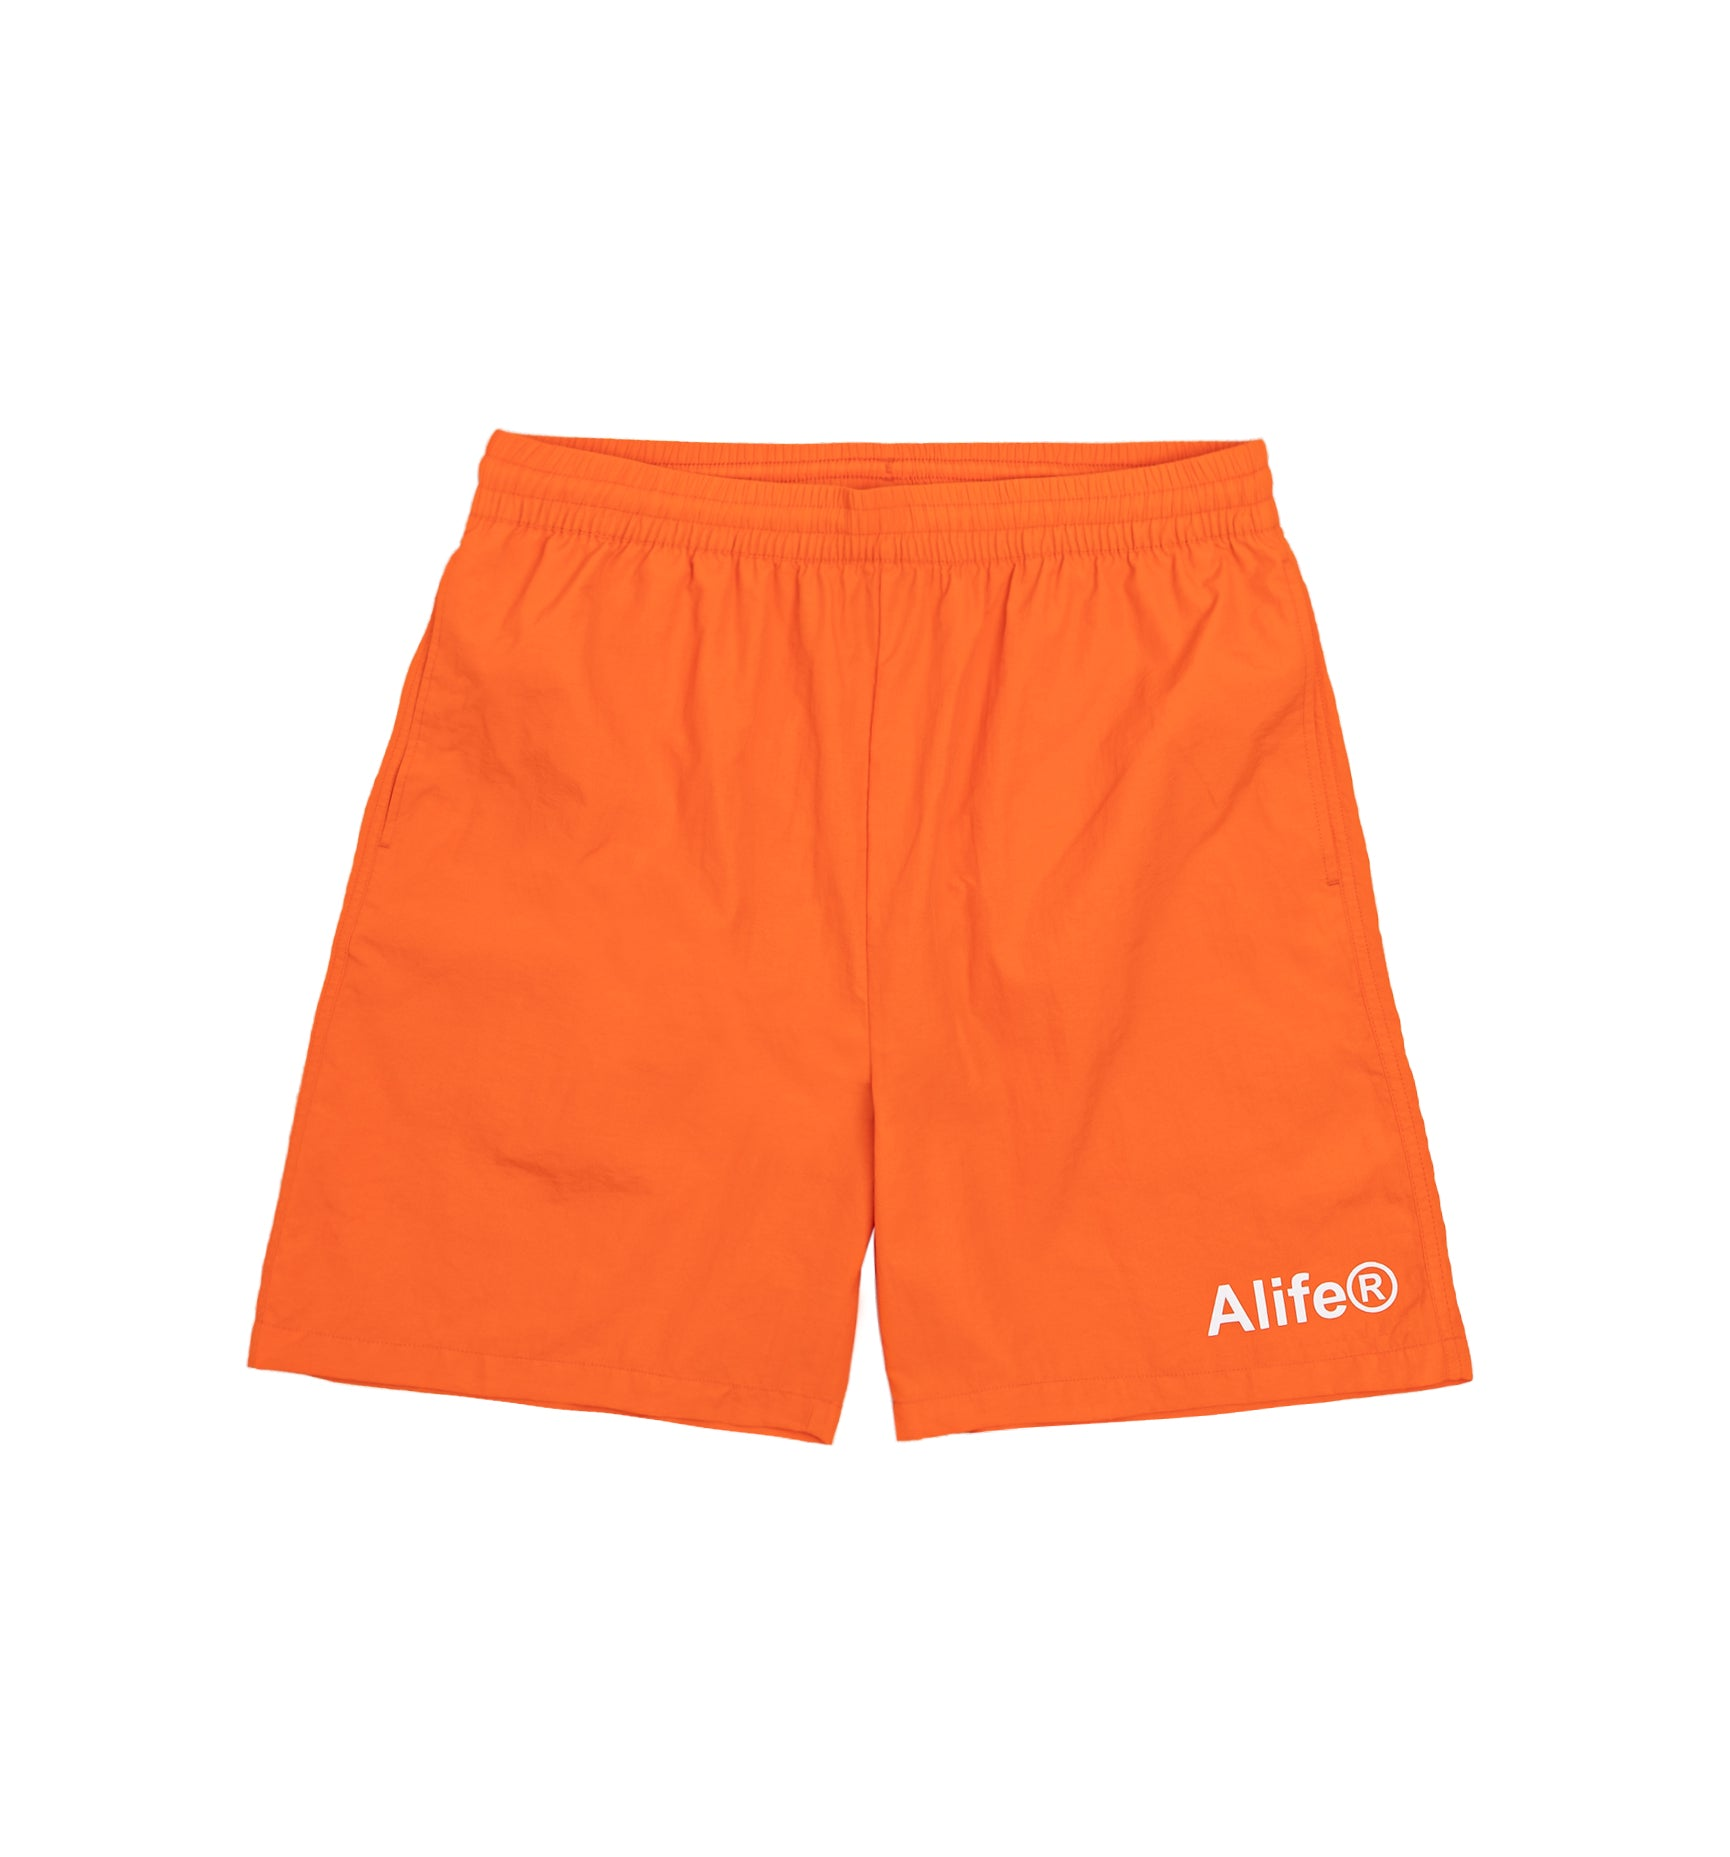 Alife Swim/Run Nylon Short - Orange